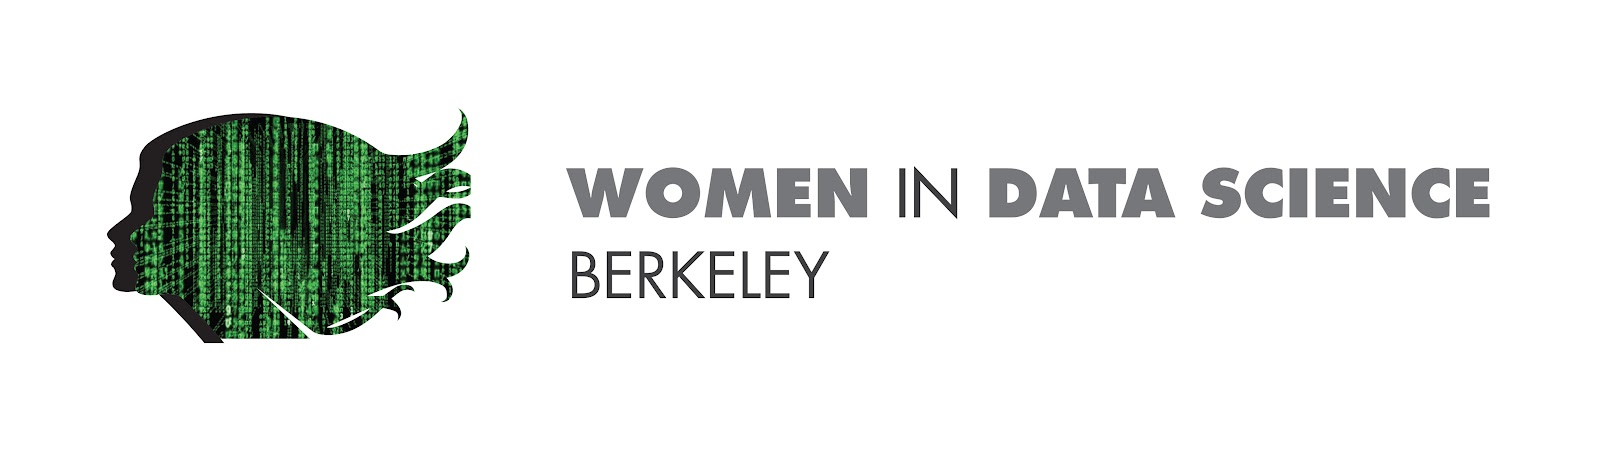 "Matrix silhouette of a woman's face placed on the left of the text, ""Women in Data Science Berkeley."""